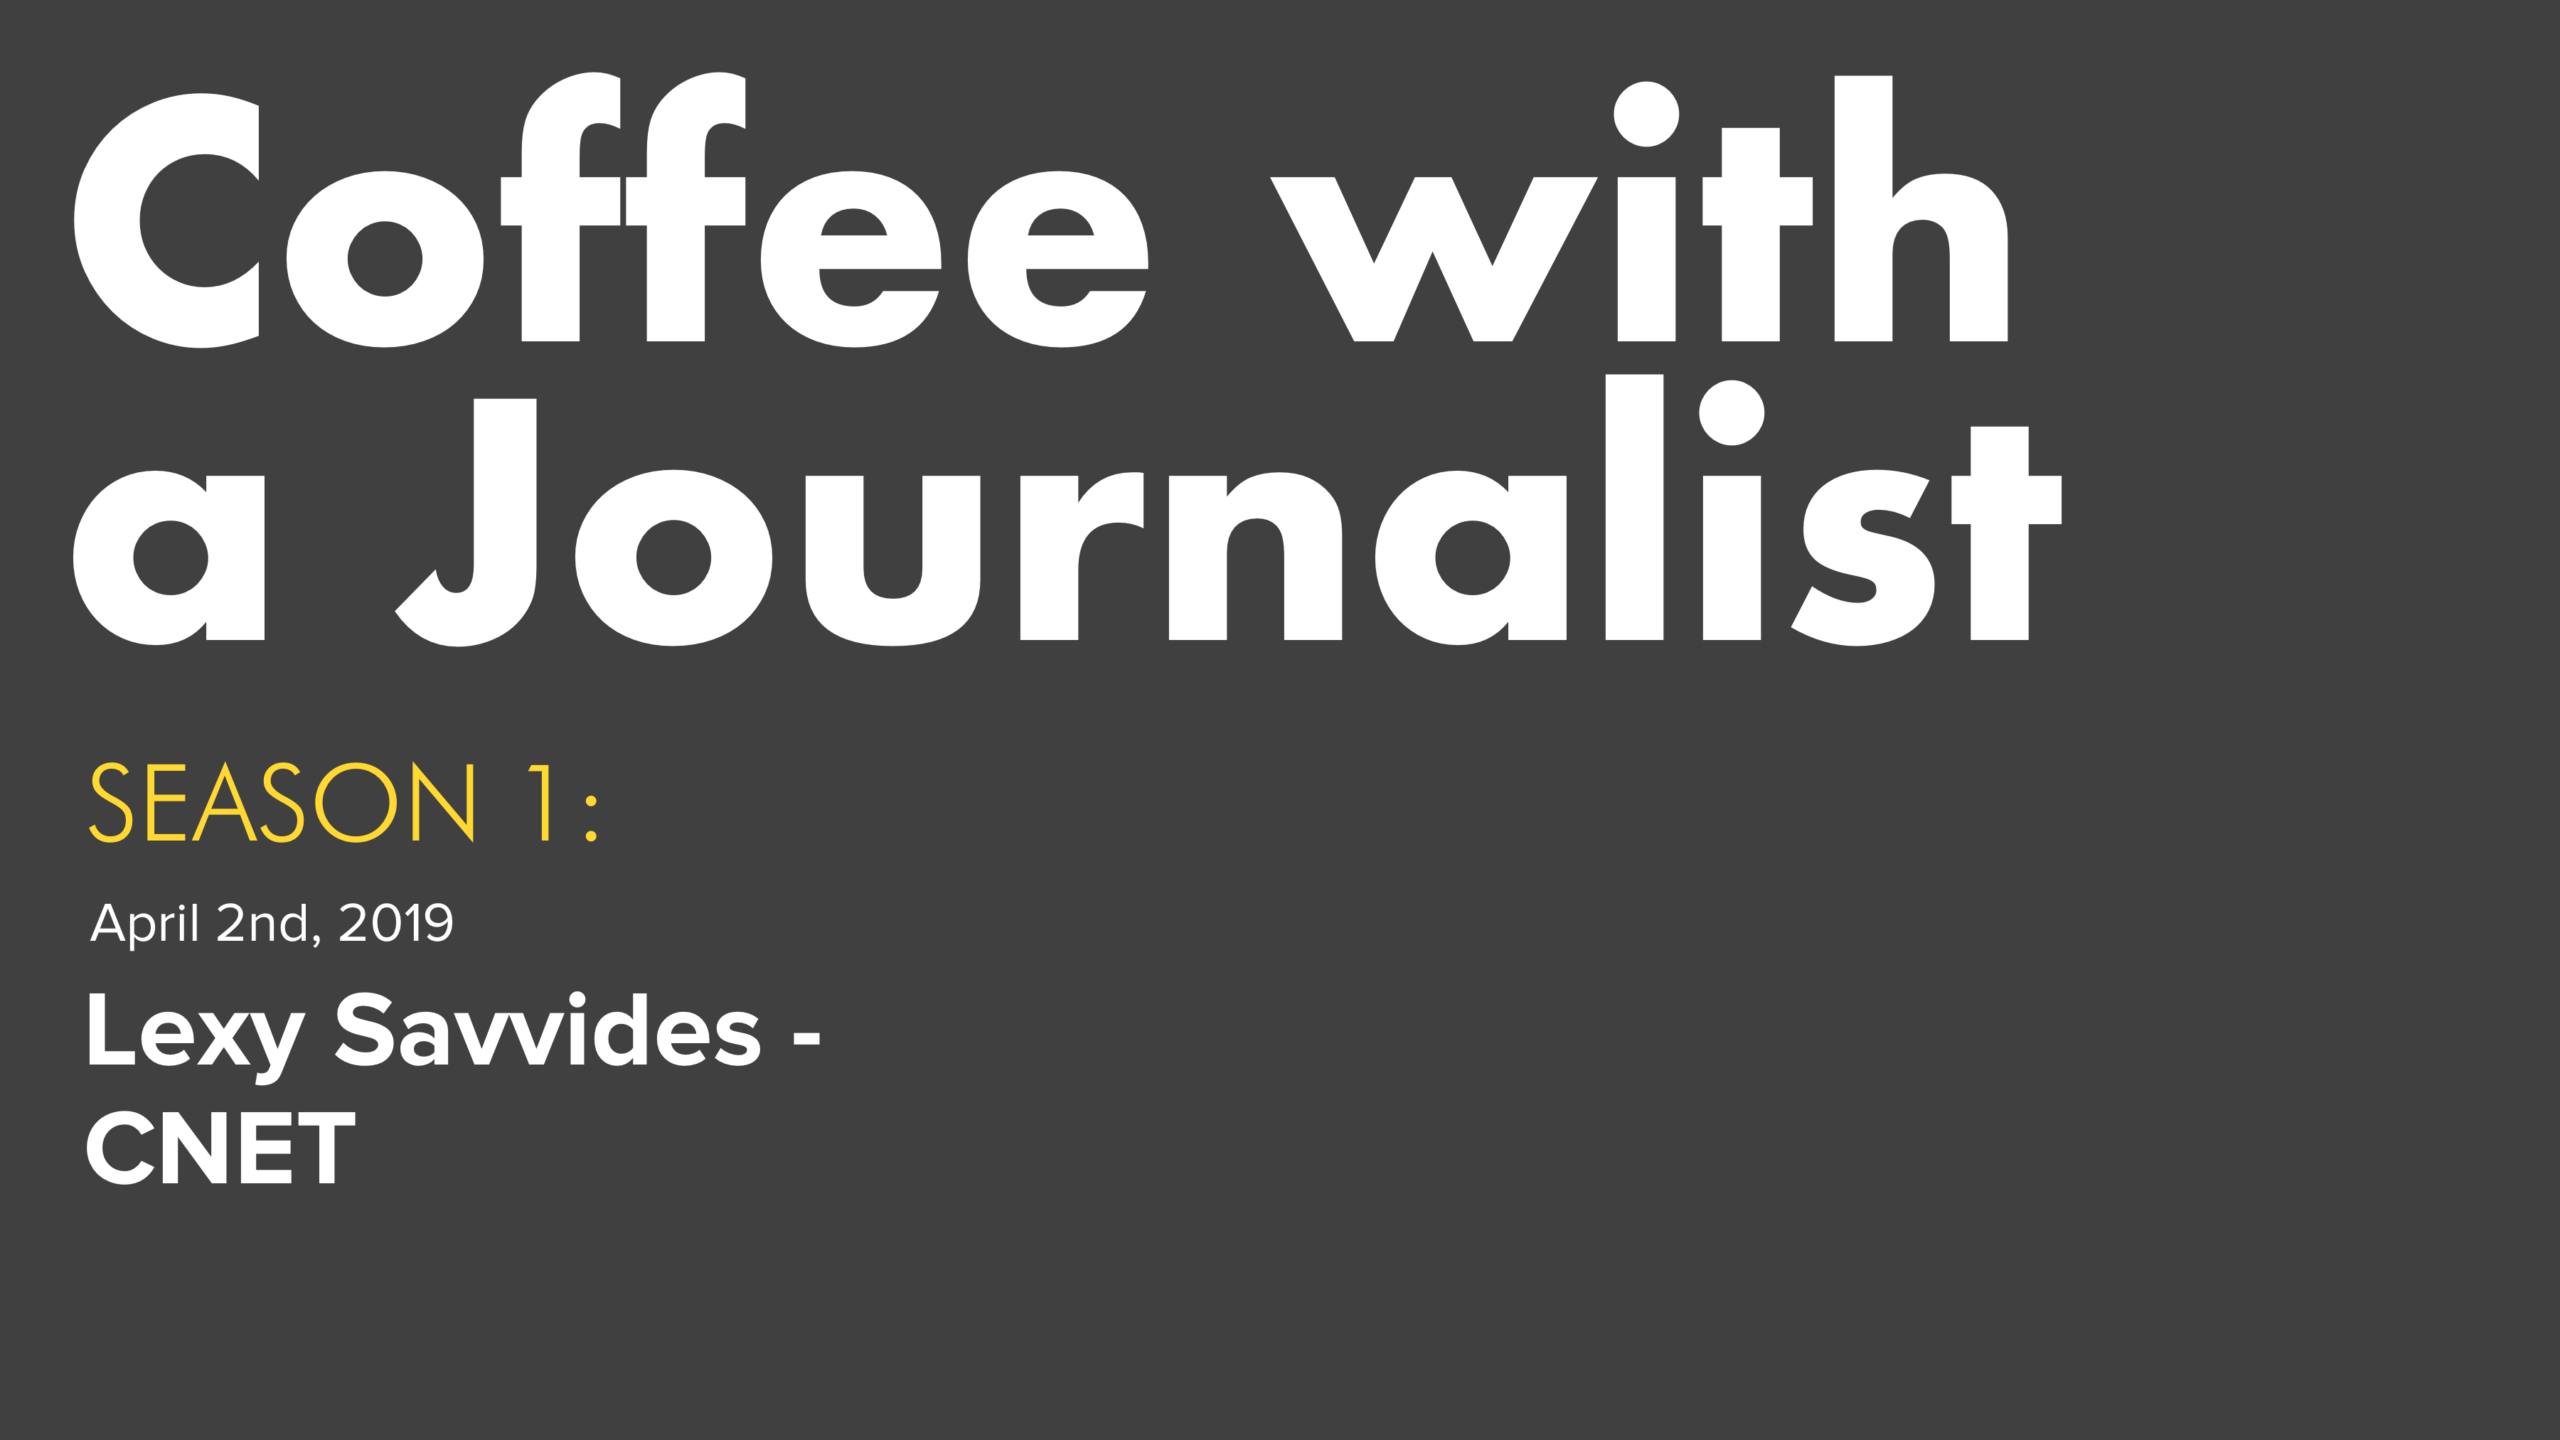 Coffee With A Journalist - Season 1